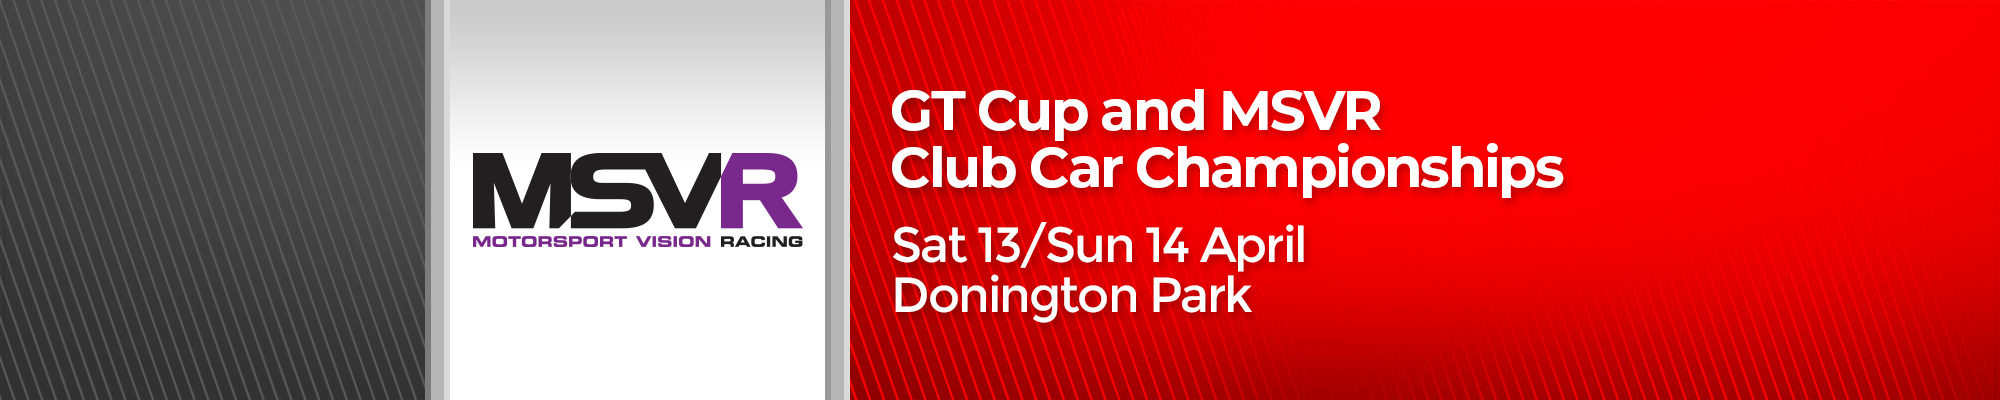 GT Cup and MSVR Club Car Championships